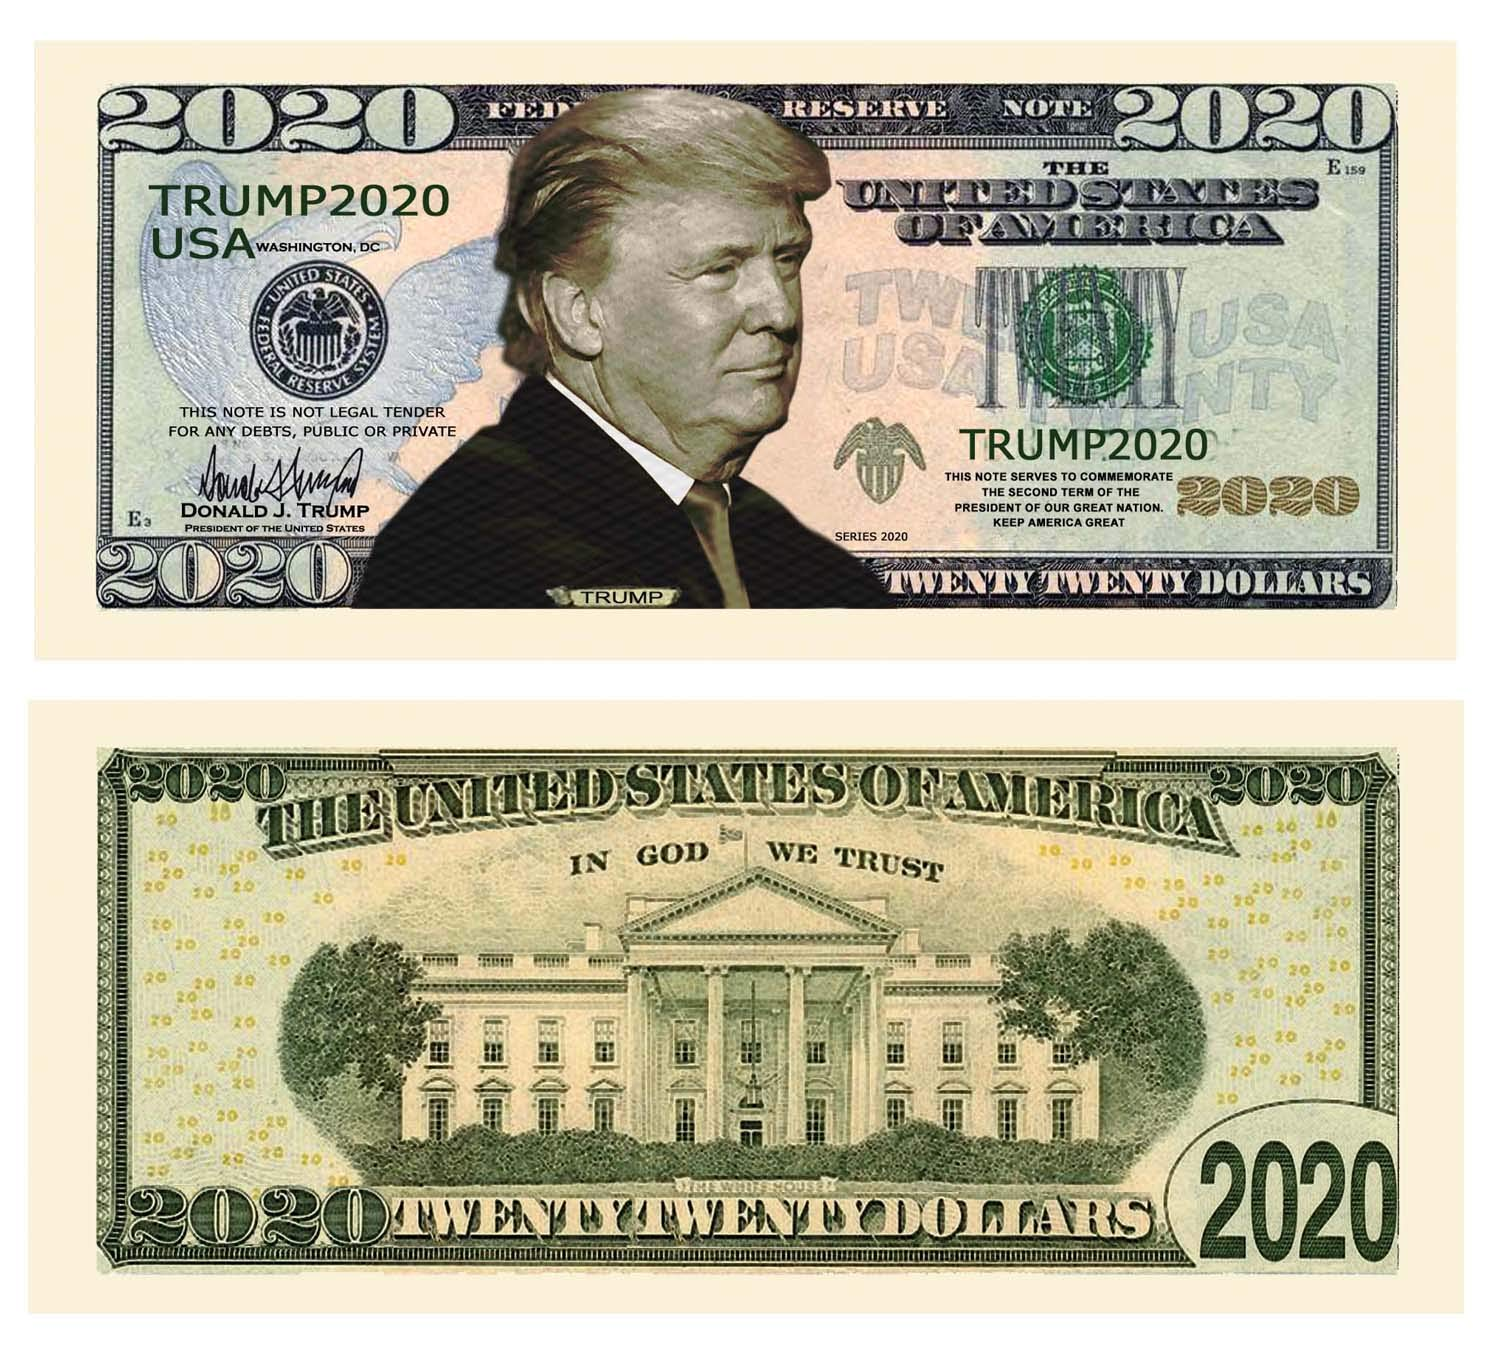 American Art Classics Pack of 50 - Donald Trump 2020 Re-Election Presidential Dollar Bill - Limited Edition Novelty Dollar Bill - The Best Gift Or Keepsake for Lovers of Our Great President by American Art Classics